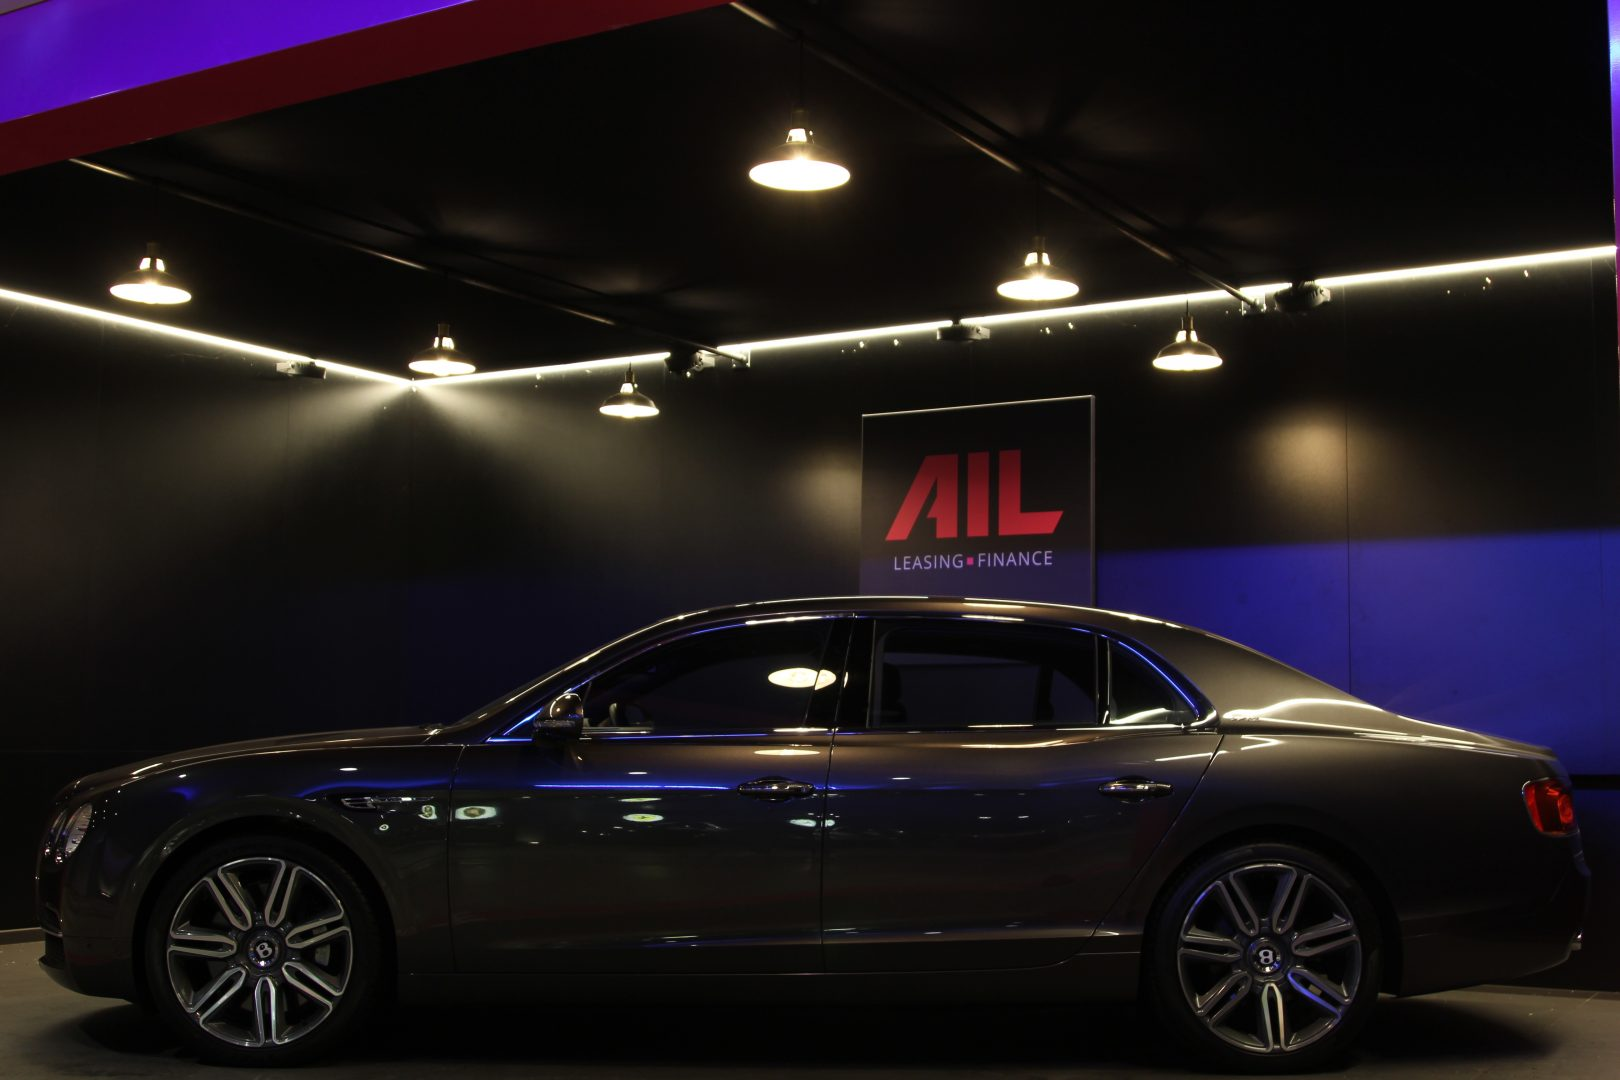 AIL Bentley Continental Flying Spur W12 5